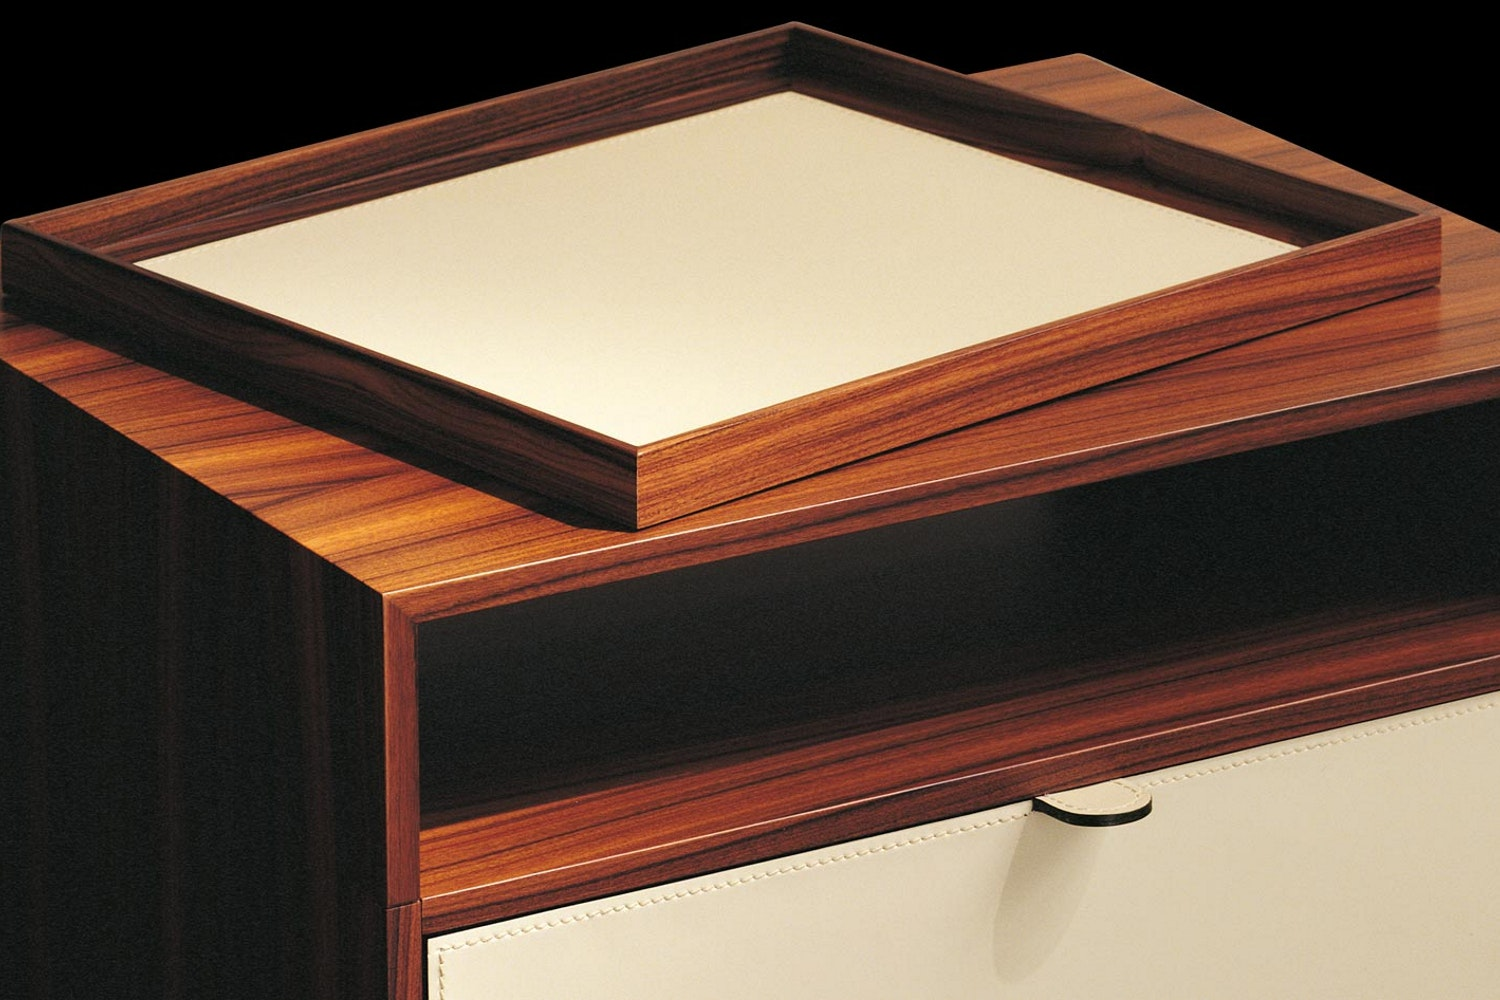 Mea Bedside Table by Chi Wing Lo for Giorgetti